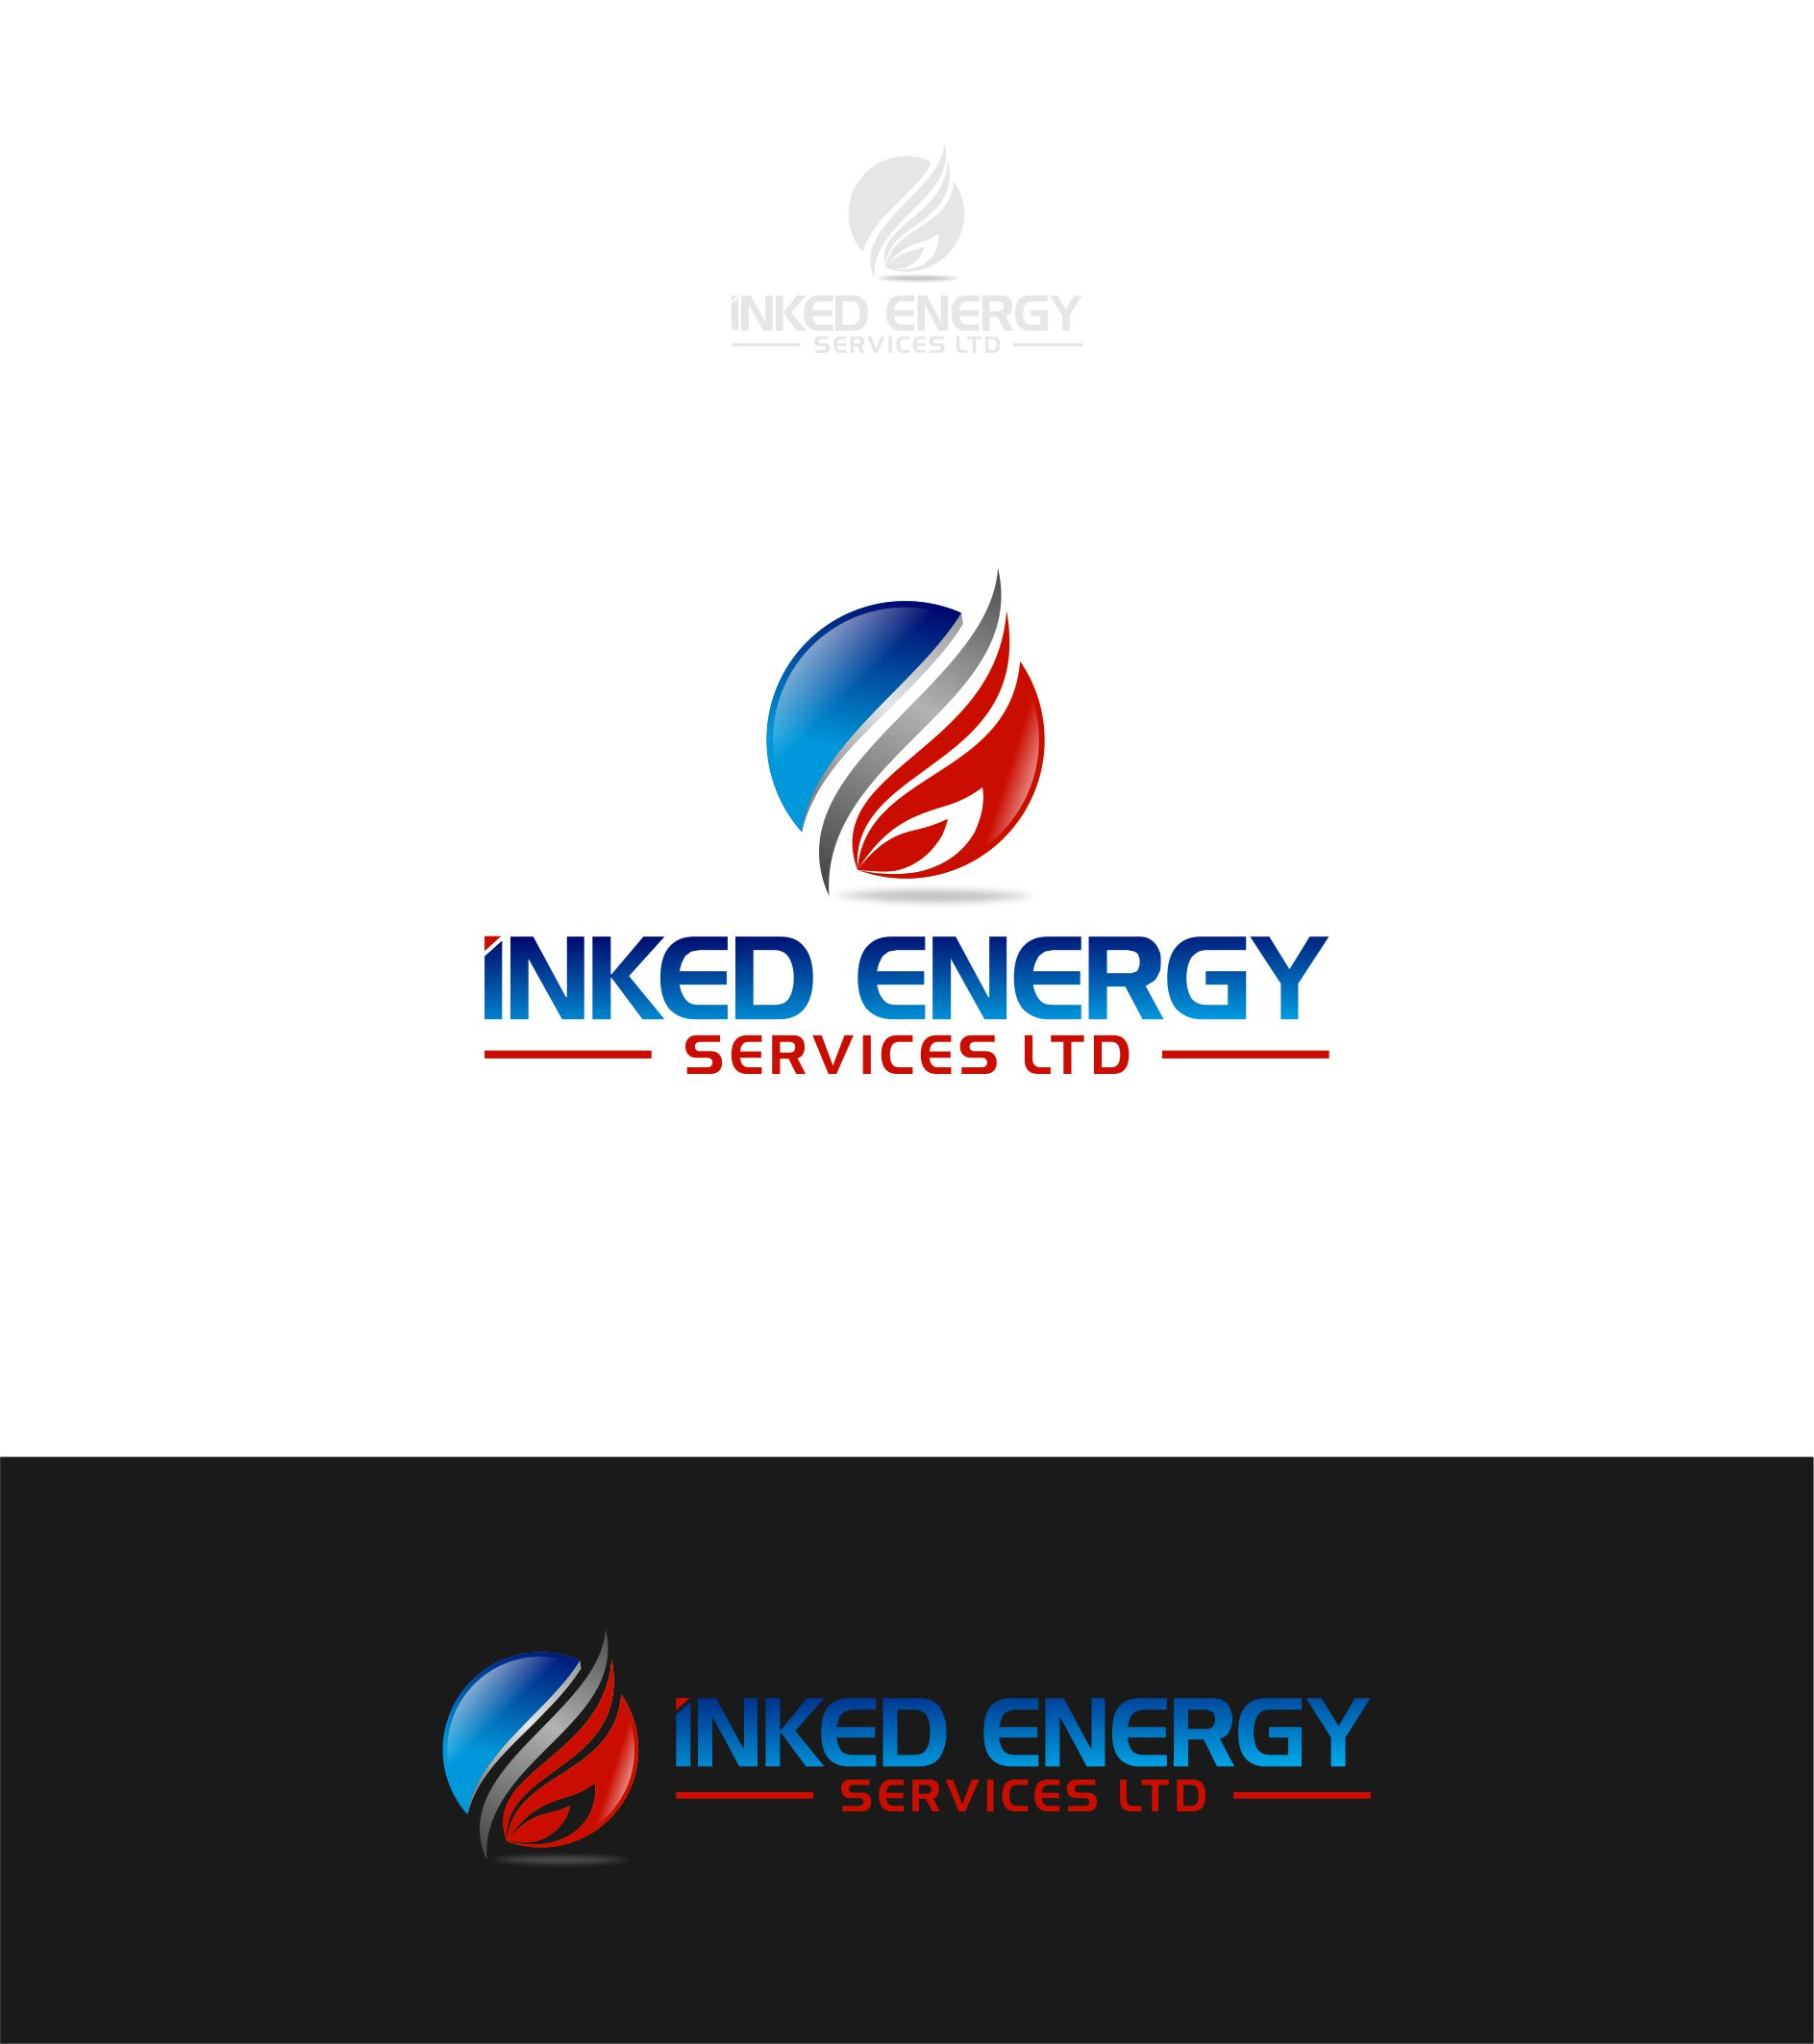 Logo Design by Raymond Garcia - Entry No. 61 in the Logo Design Contest Creative Logo Design for INKED ENERGY SERVICES LTD.